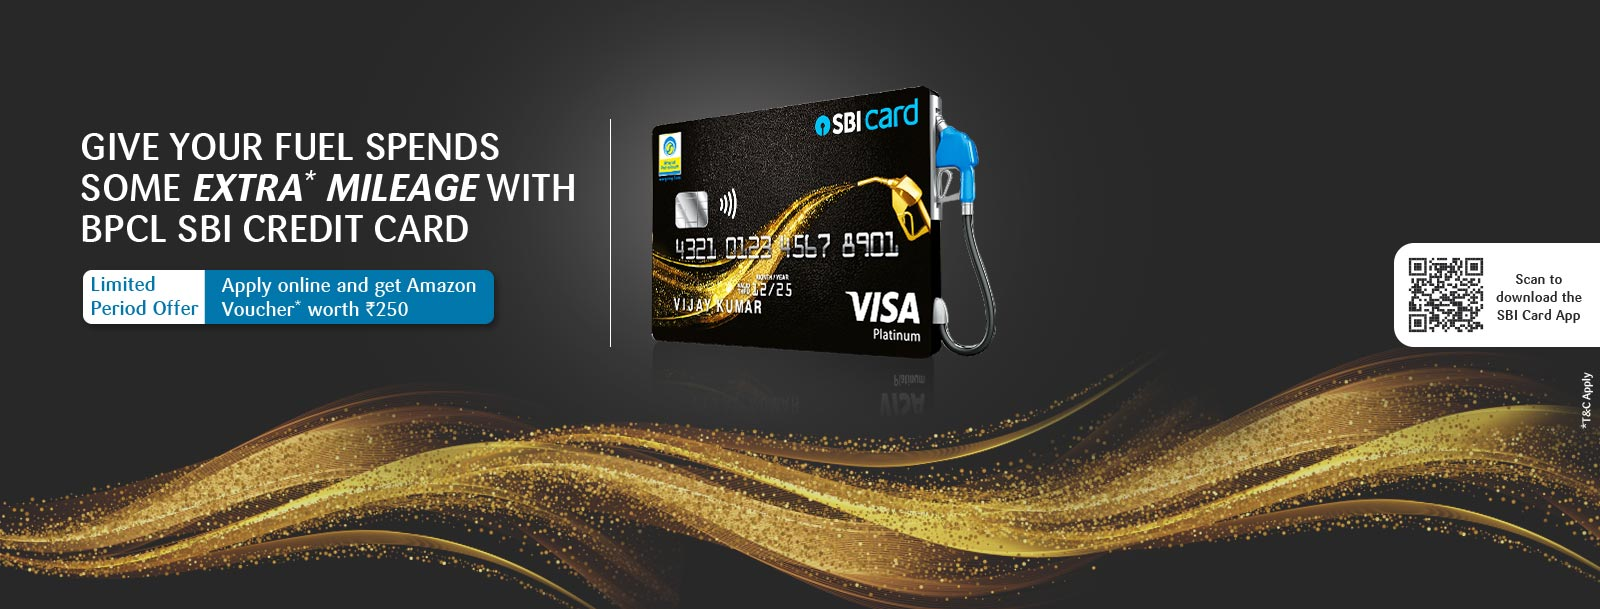 SBI Credit Card Online | Best Credit Cards Services in India